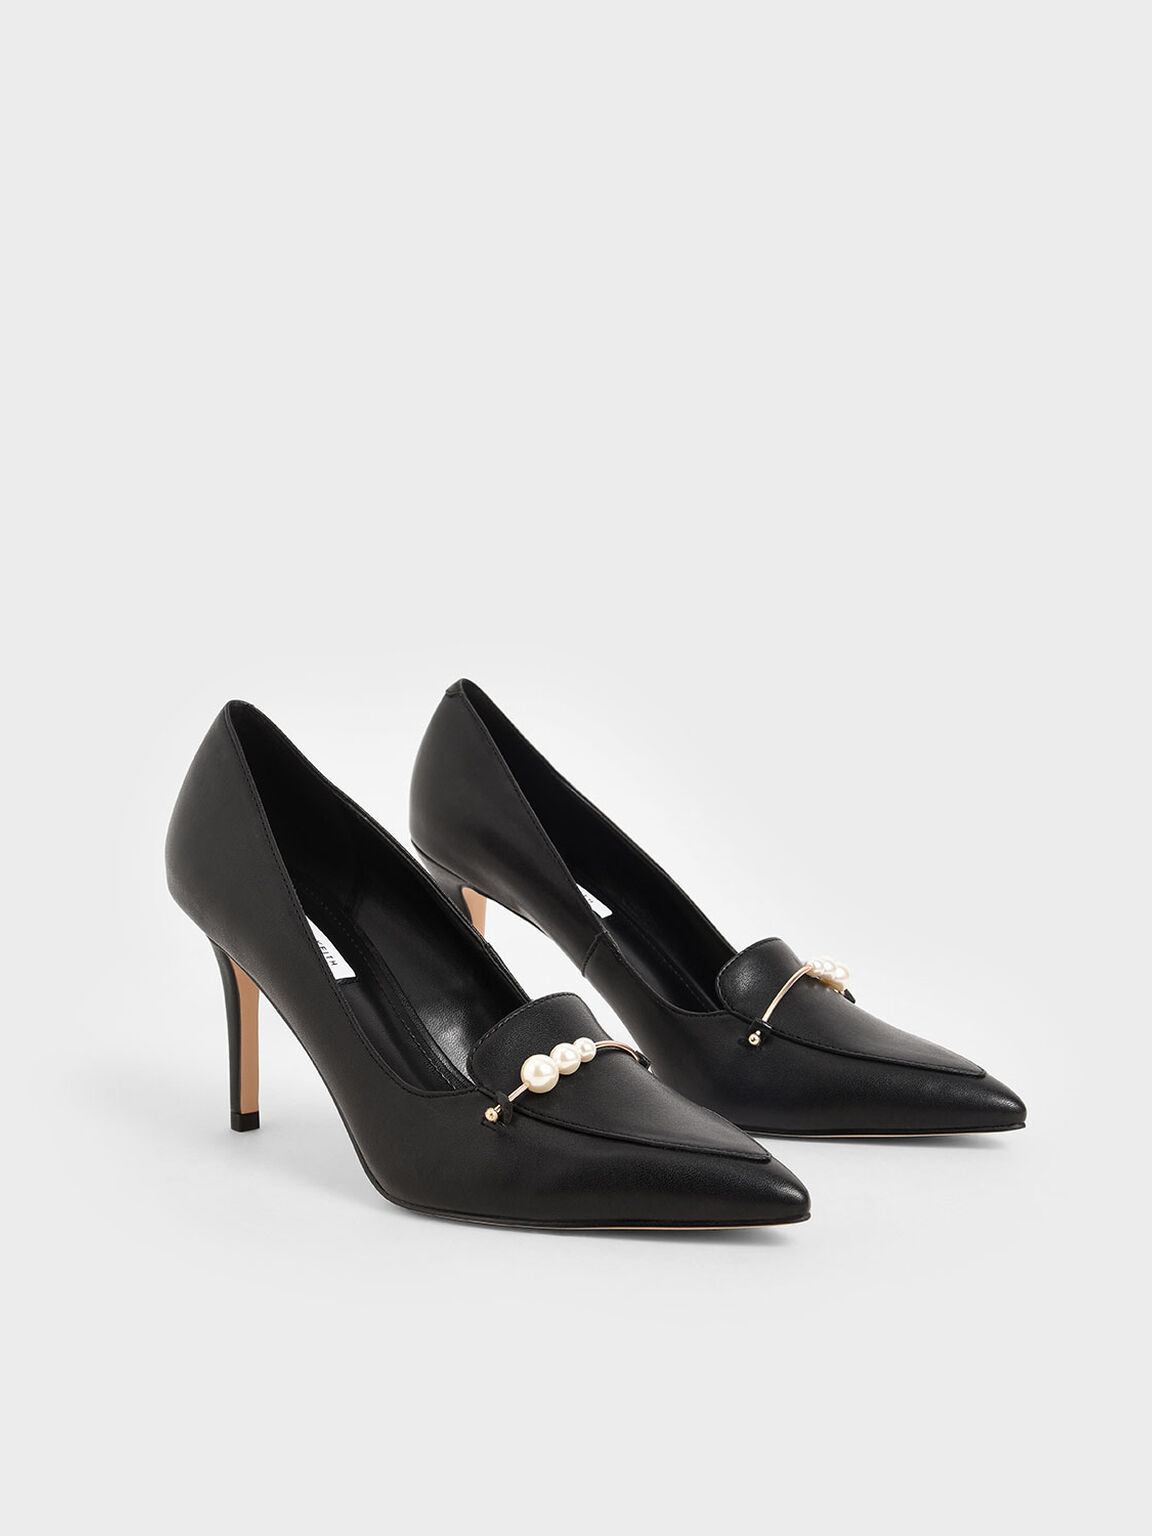 Embellished Loafer Pumps, Black, hi-res